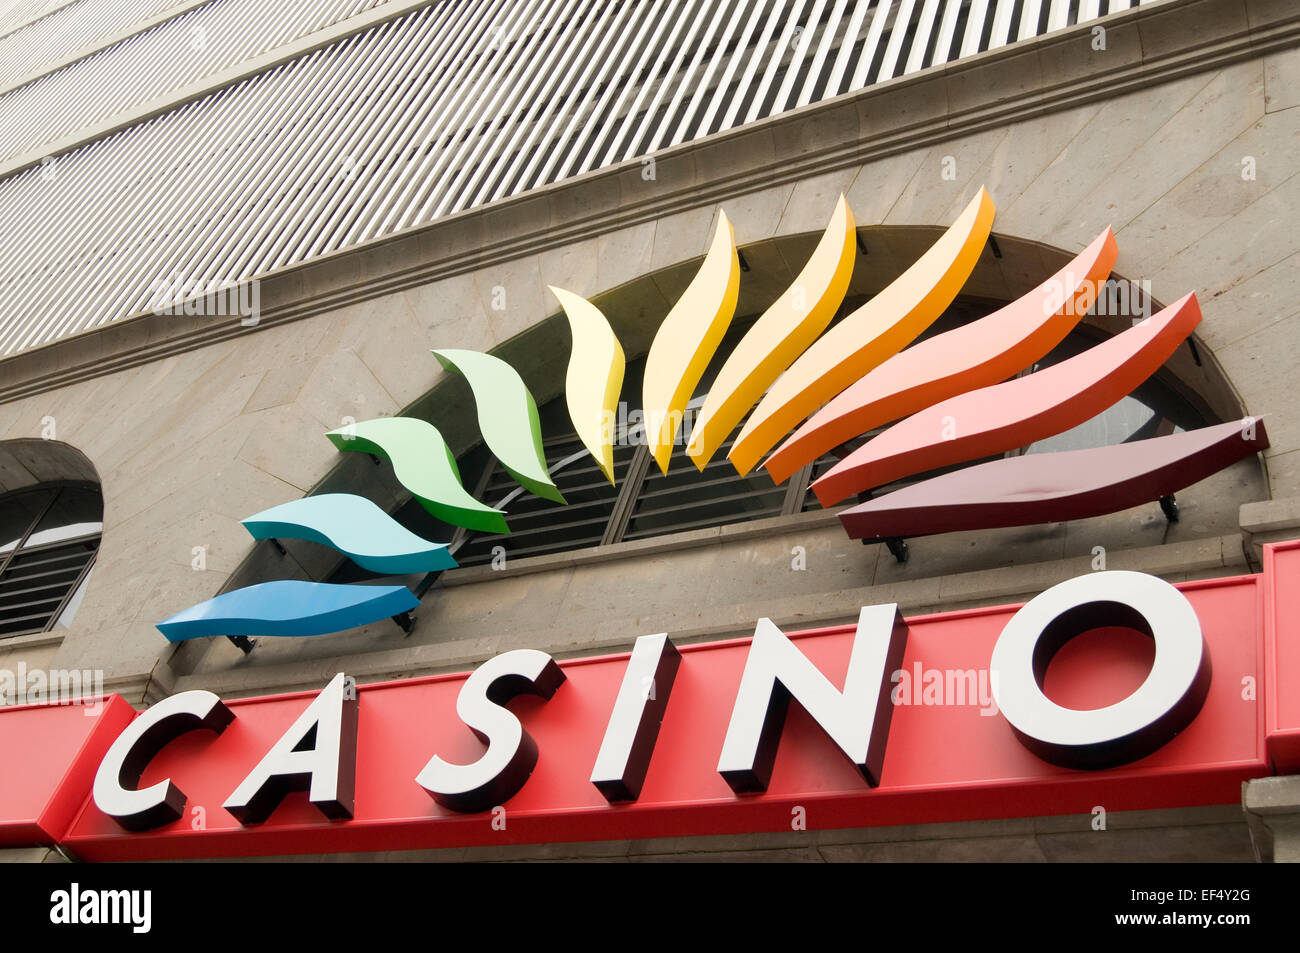 casino casinos gamble gambling gambler gamblers risk risks risky loss losses game games of chance odds - Stock Image